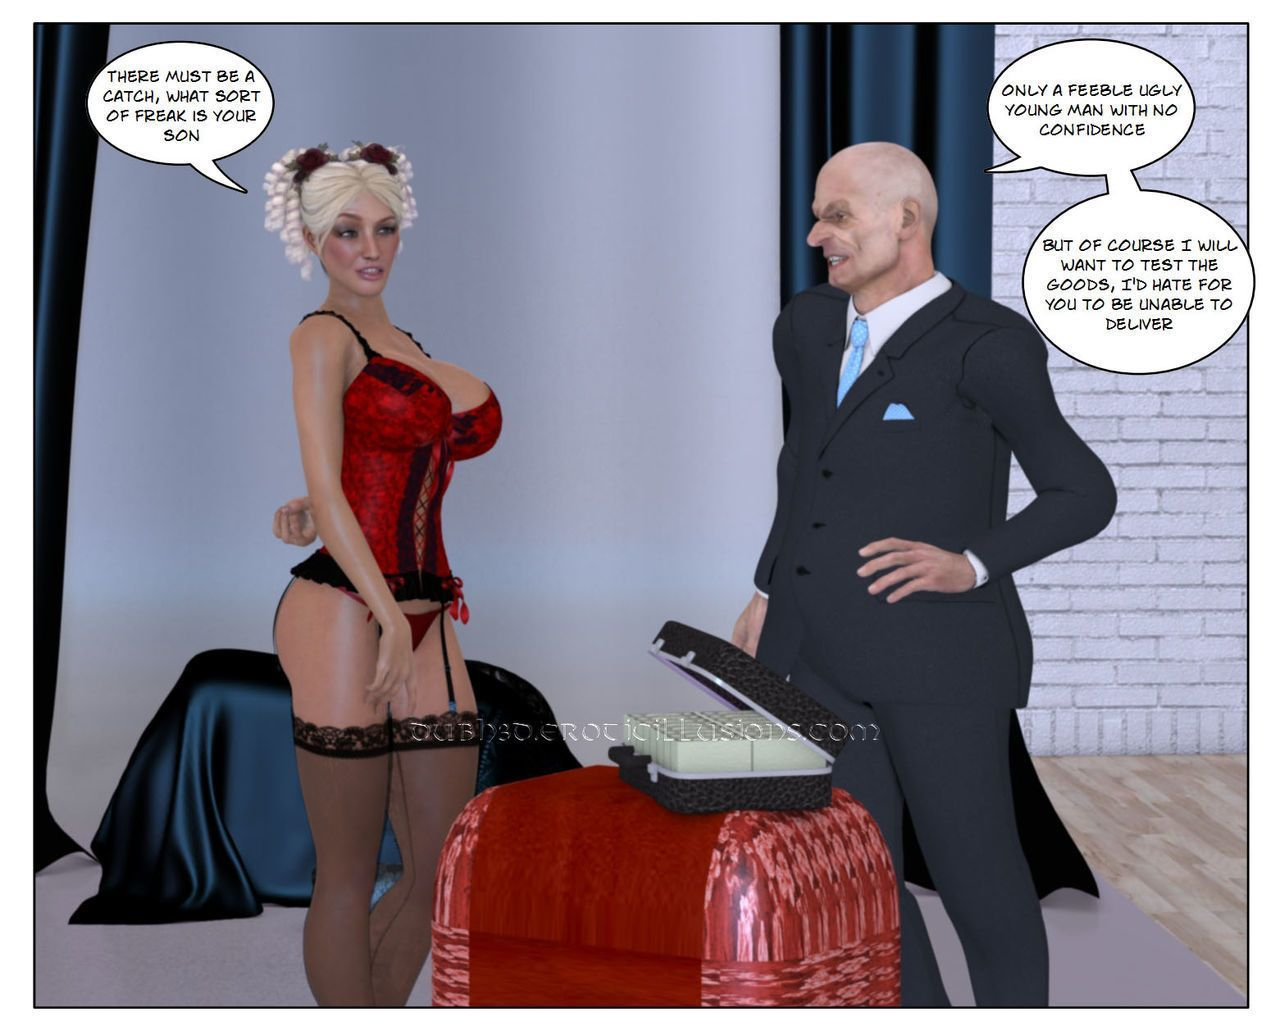 Dubhgilla - Marie Claude - The Proposal And Introduction